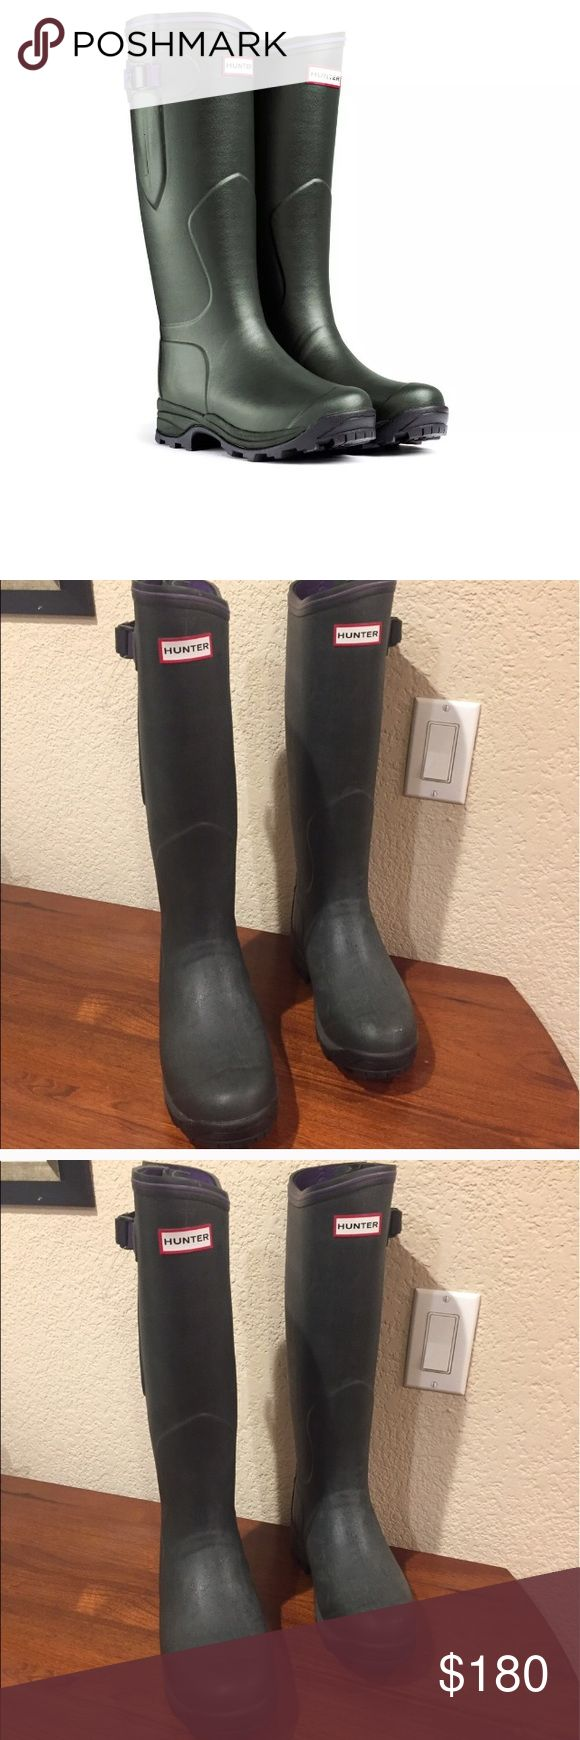 Hunter equestrian neoprene boots NWOB Hunter balmoral neoprene lined boots NWOB brand new never worn boots hunter green with purple adorable and warm! Perfect for spring! ☔️ euro 39 Hunter Shoes